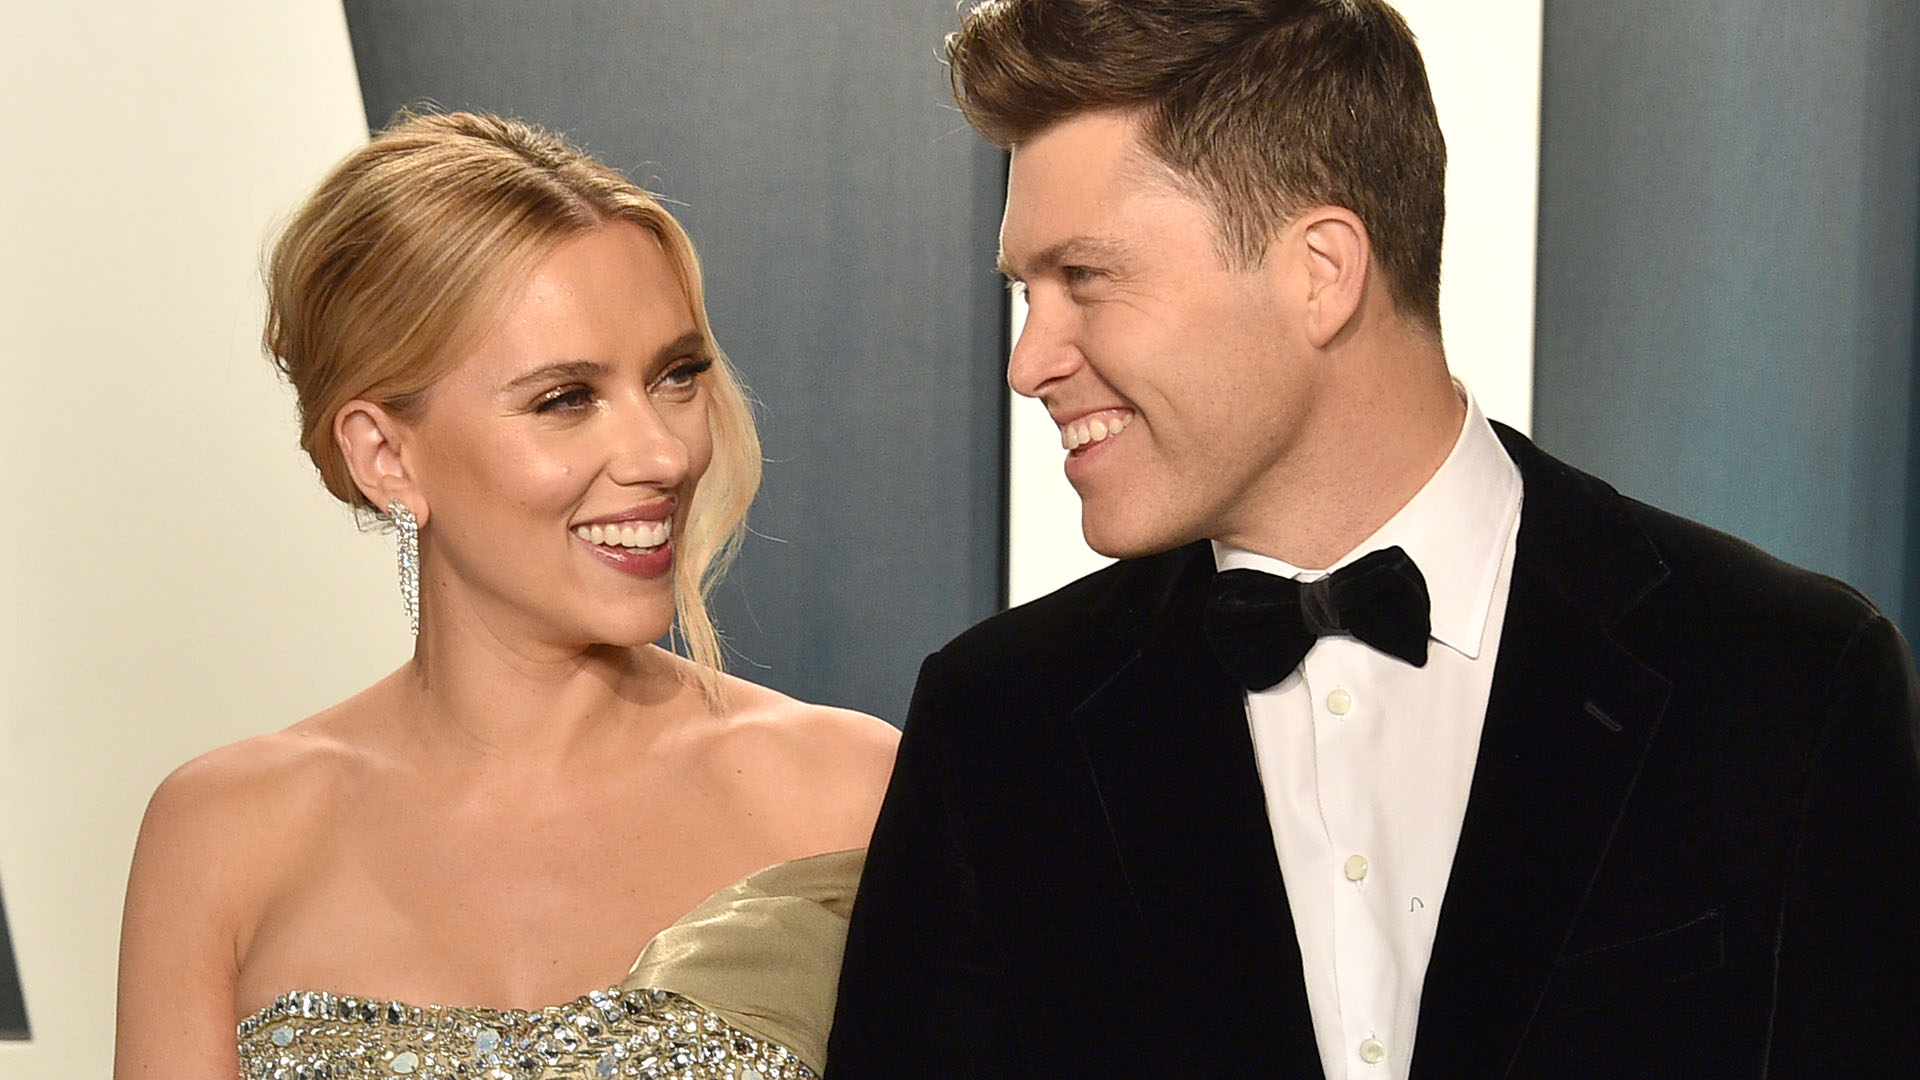 When Will Scarlett Johansson And Colin Jost Get Married The Couple Rethinks Wedding Plans